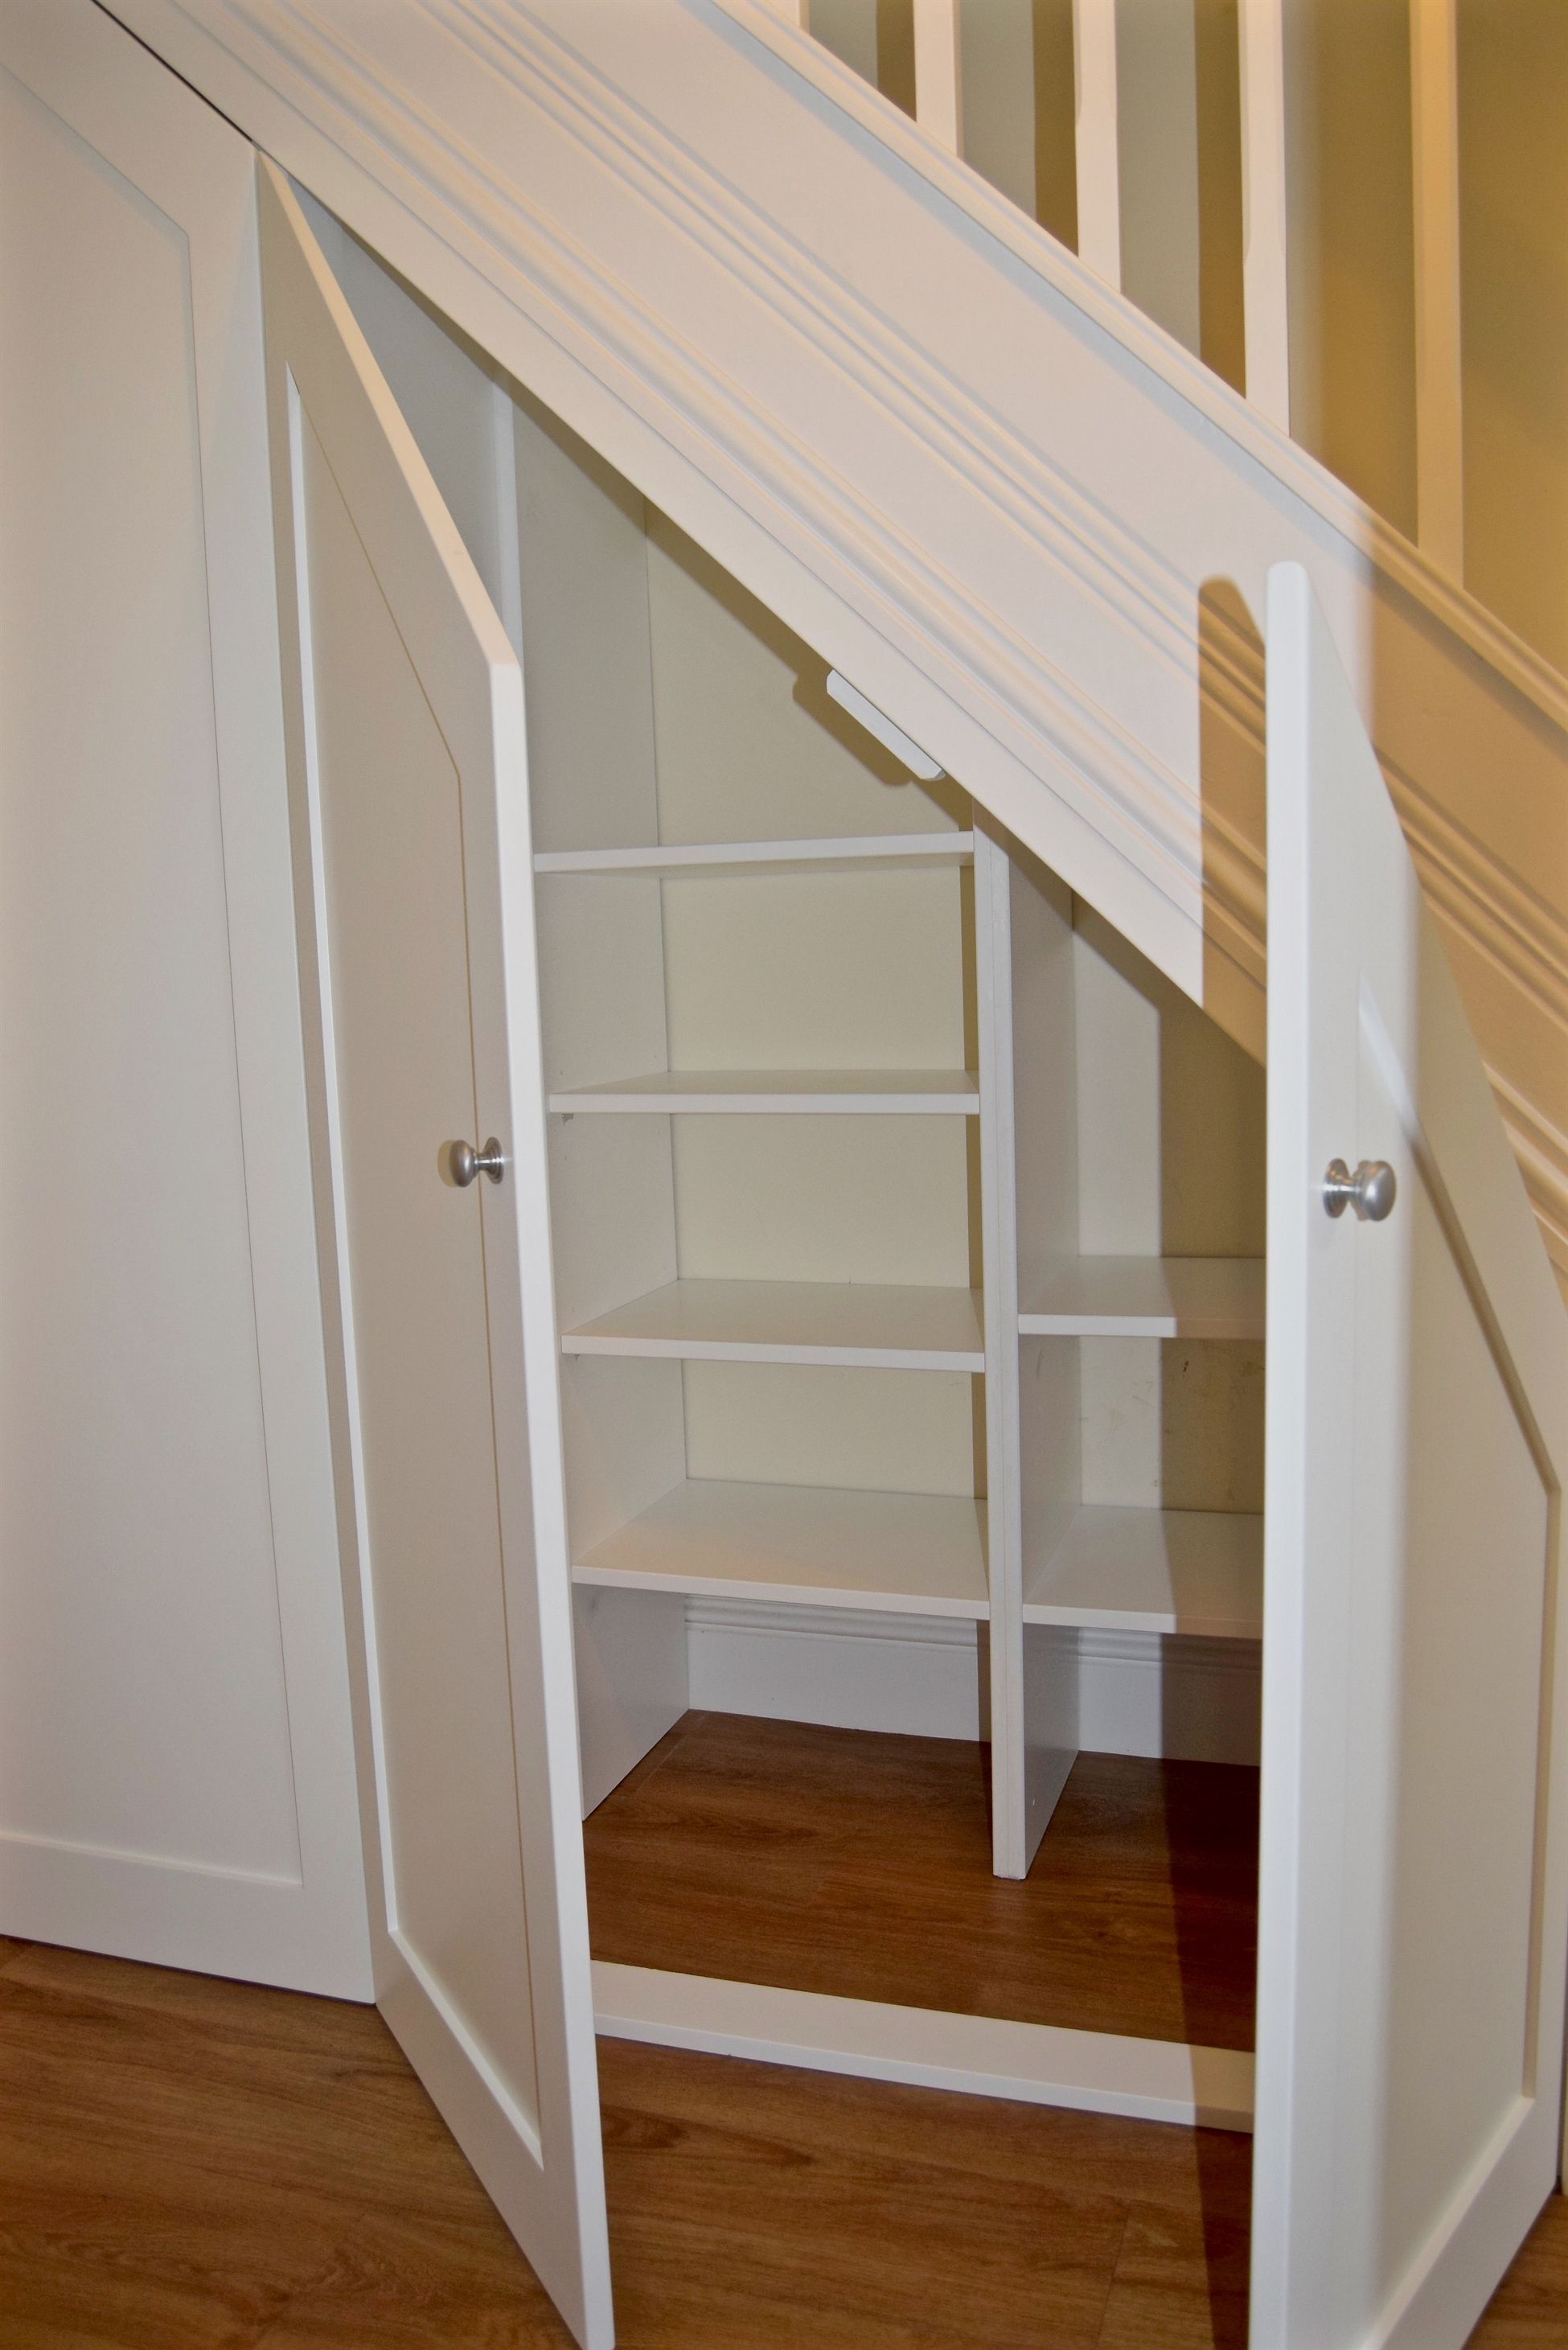 10 Under Stair Storage Ideas That Make Your House Look Stunning